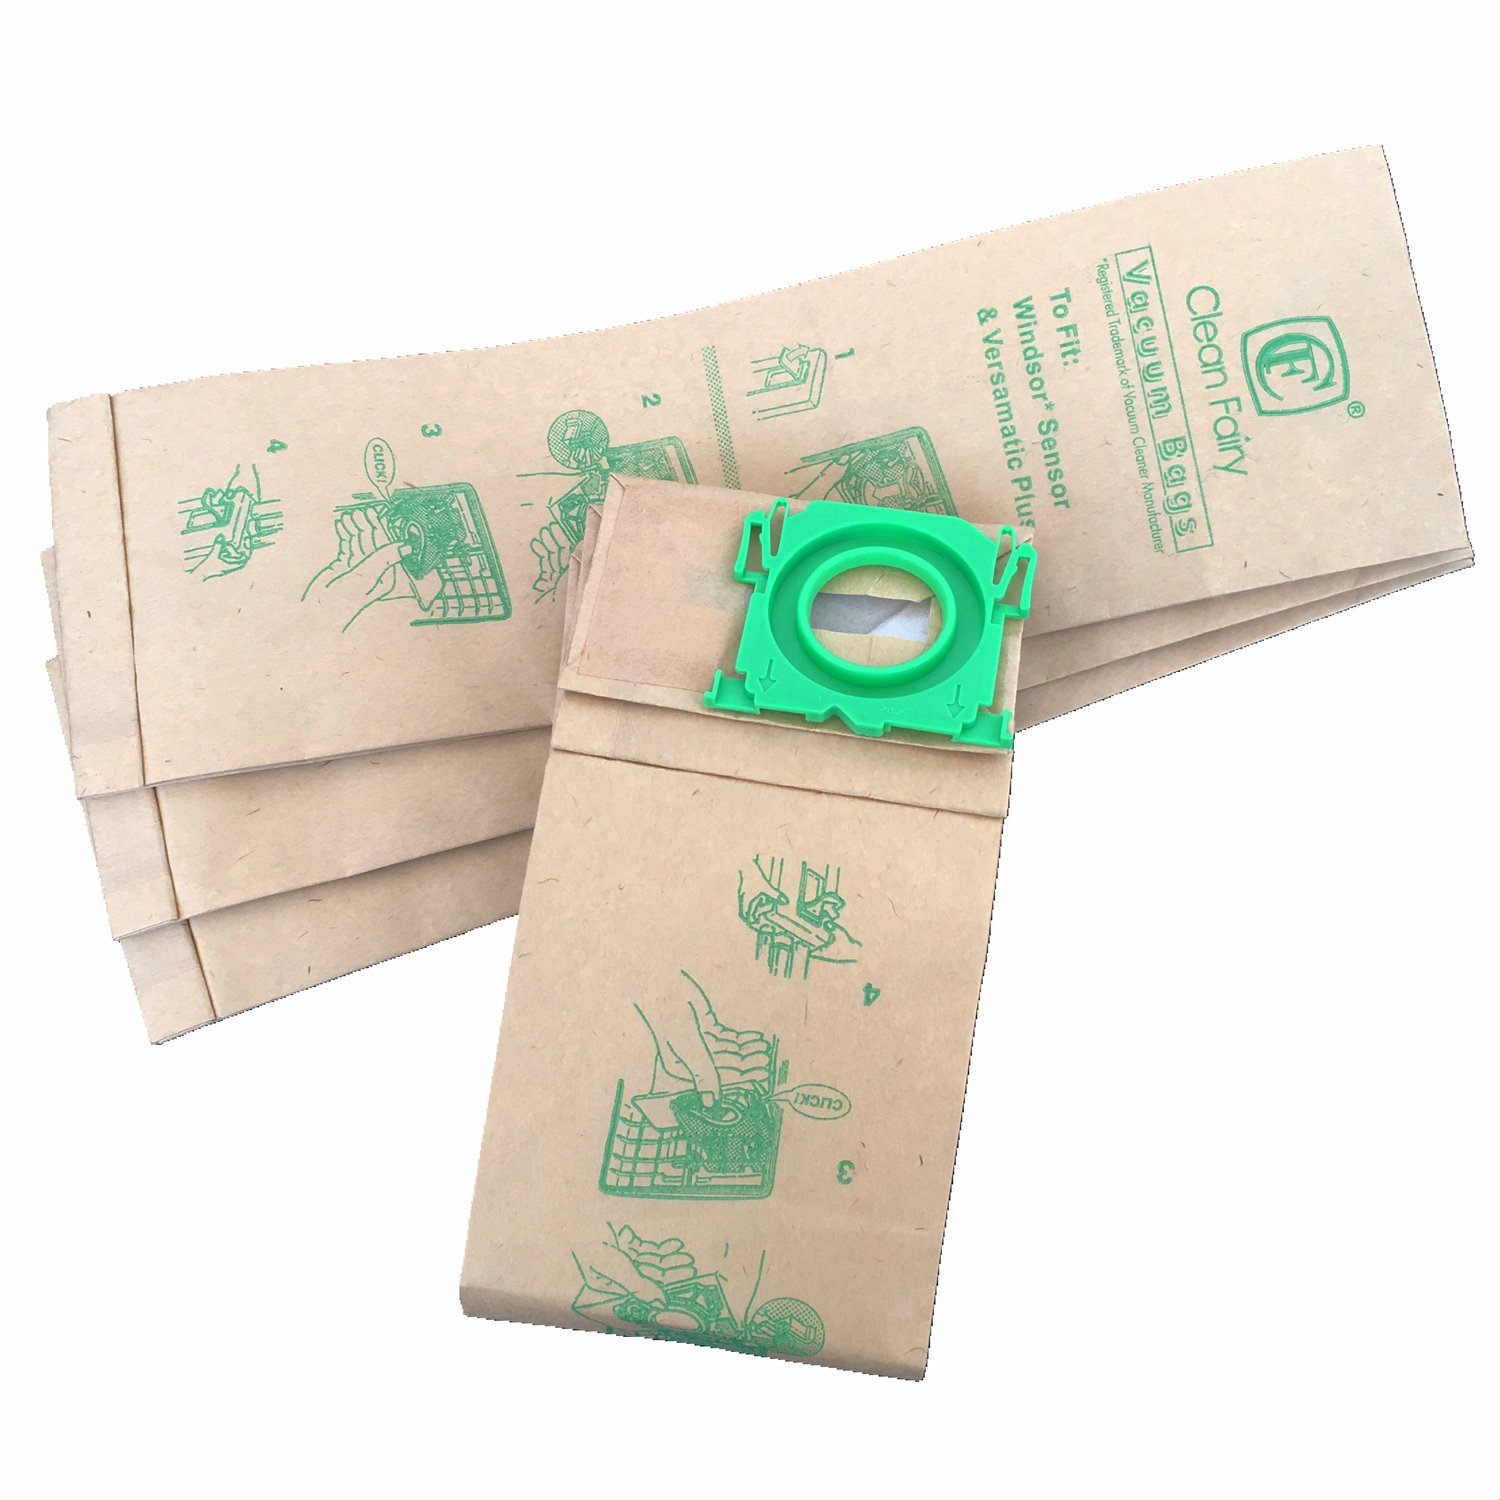 CF Clean Fairy vacuum bags used for Windsor Sensor 5300REP Upright Vacuum Paper Bags Professional G1, C2,C3, K2, K3, X, G & C Series, 12 & 15 upright series 20pack